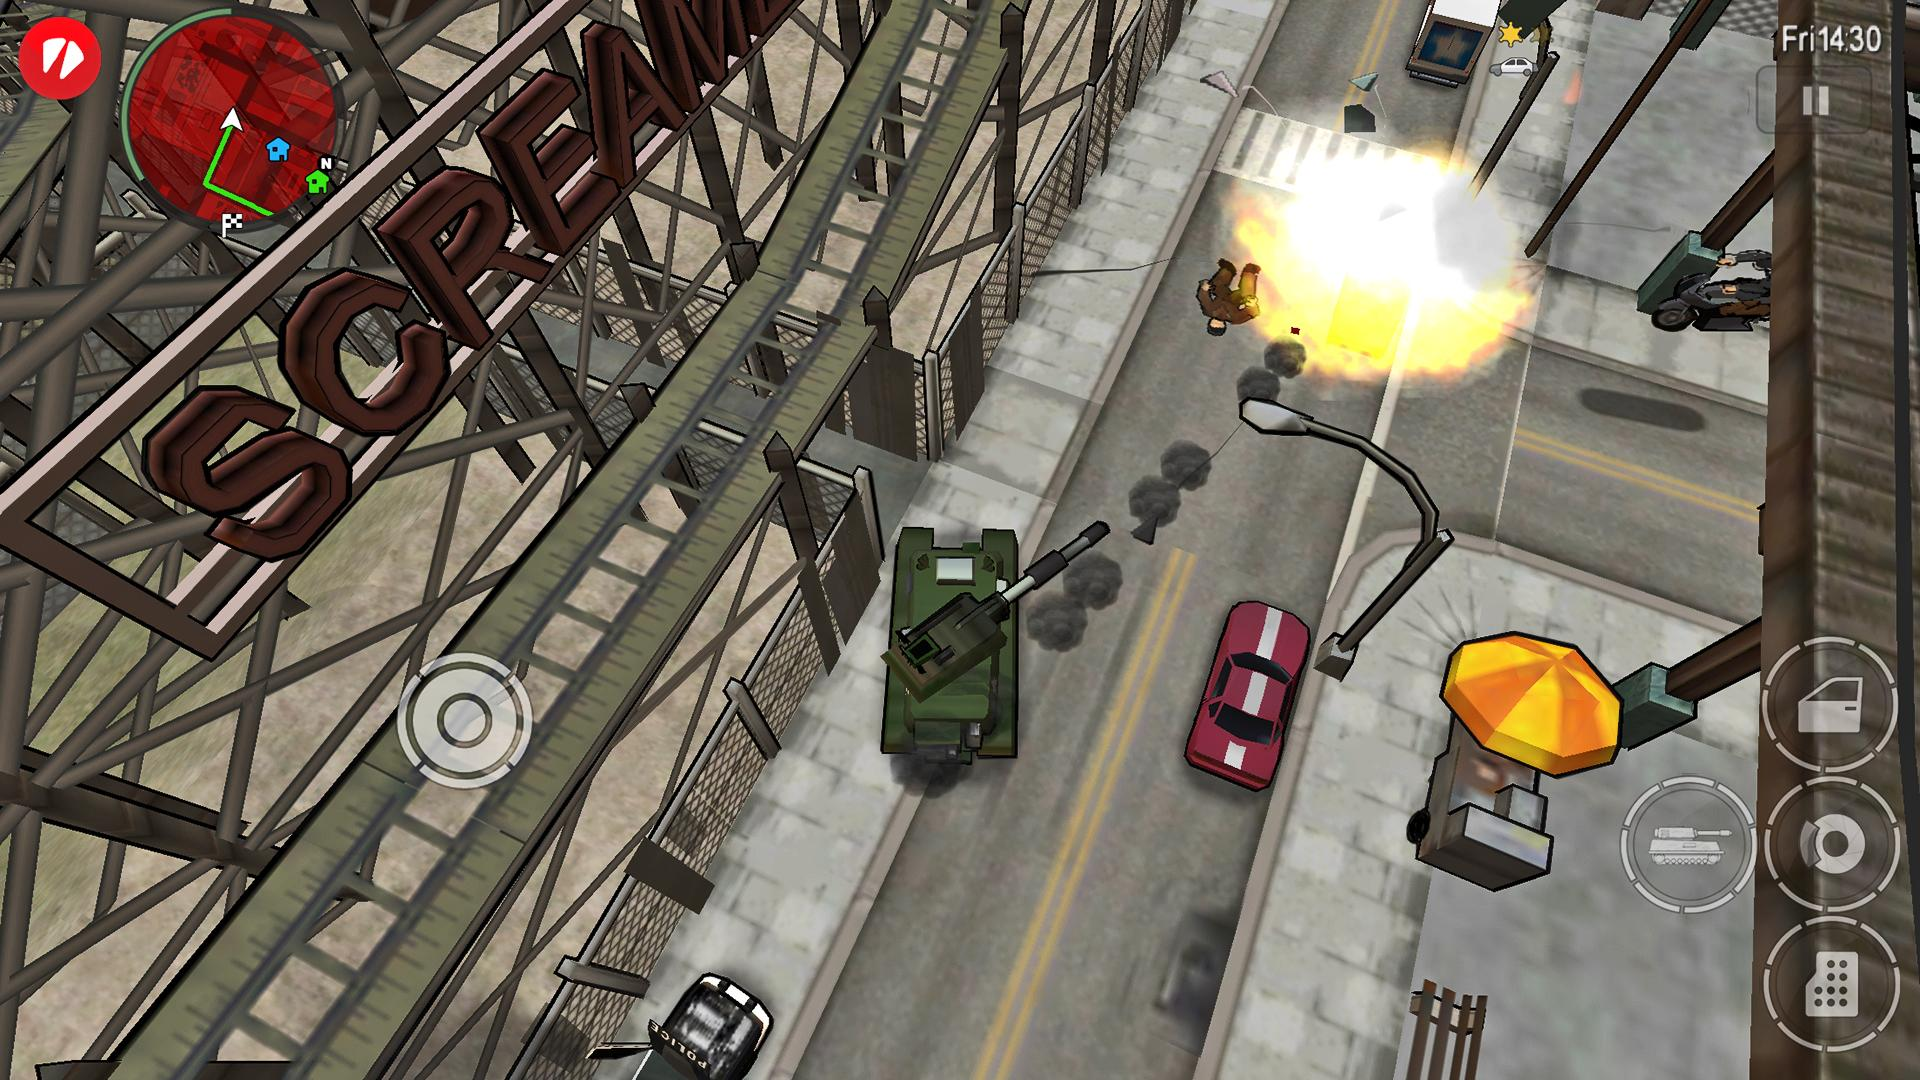 Download Grand Theft Auto: Chinatown Wars On PC With